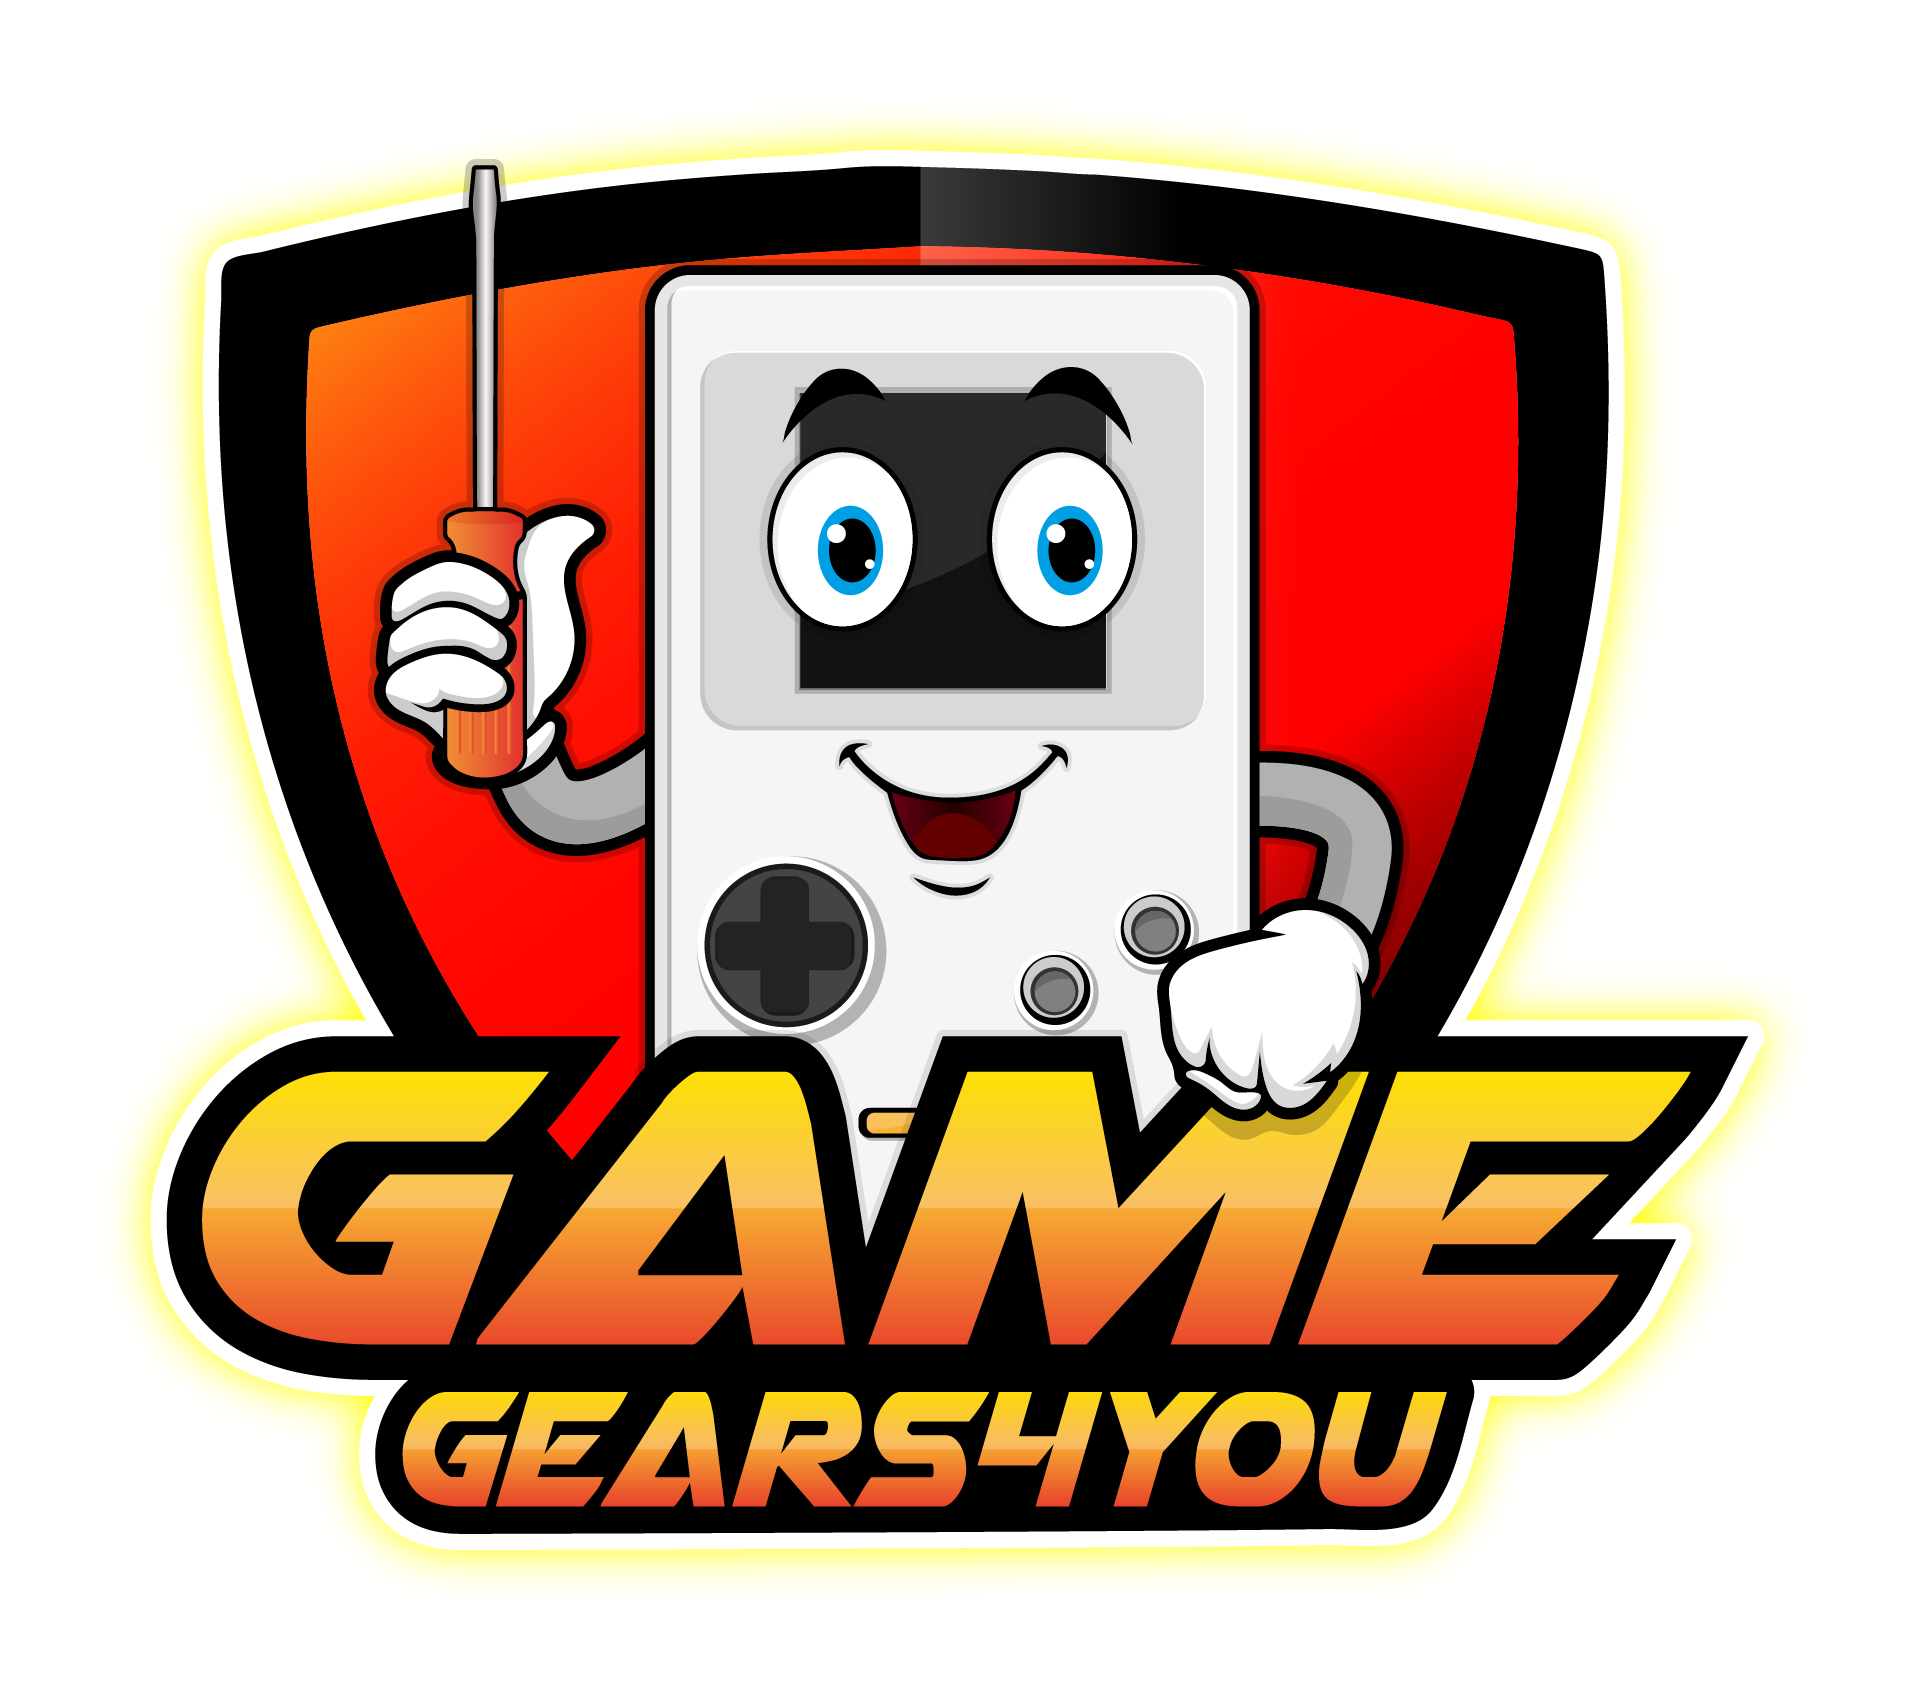 GameGears4You